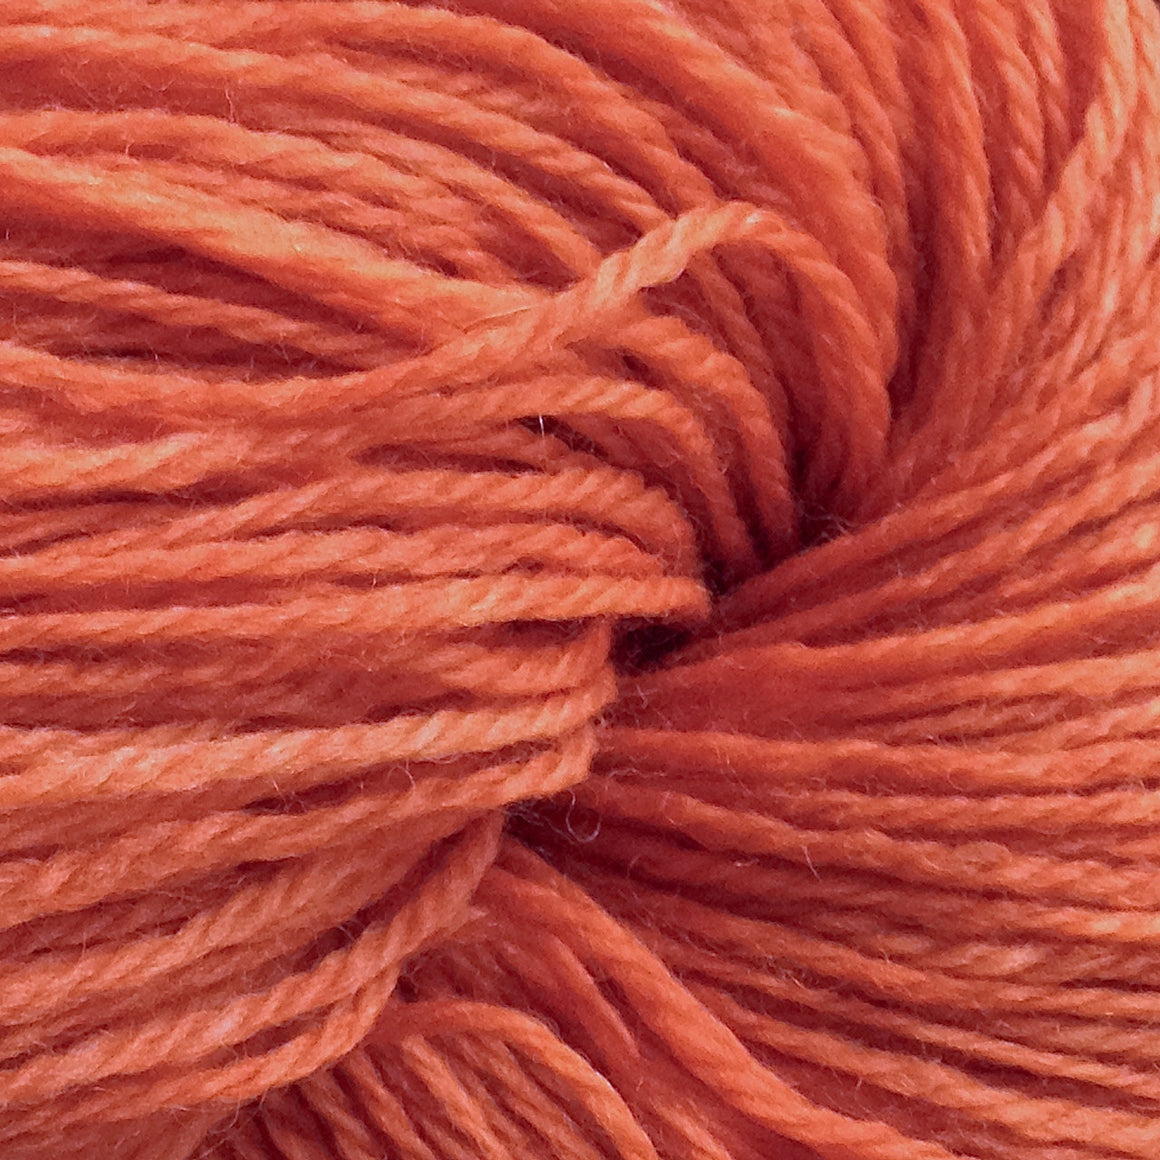 """Stuck on You"" has orange tones sticking to a merino/nylon super wash fingering weight yarn"